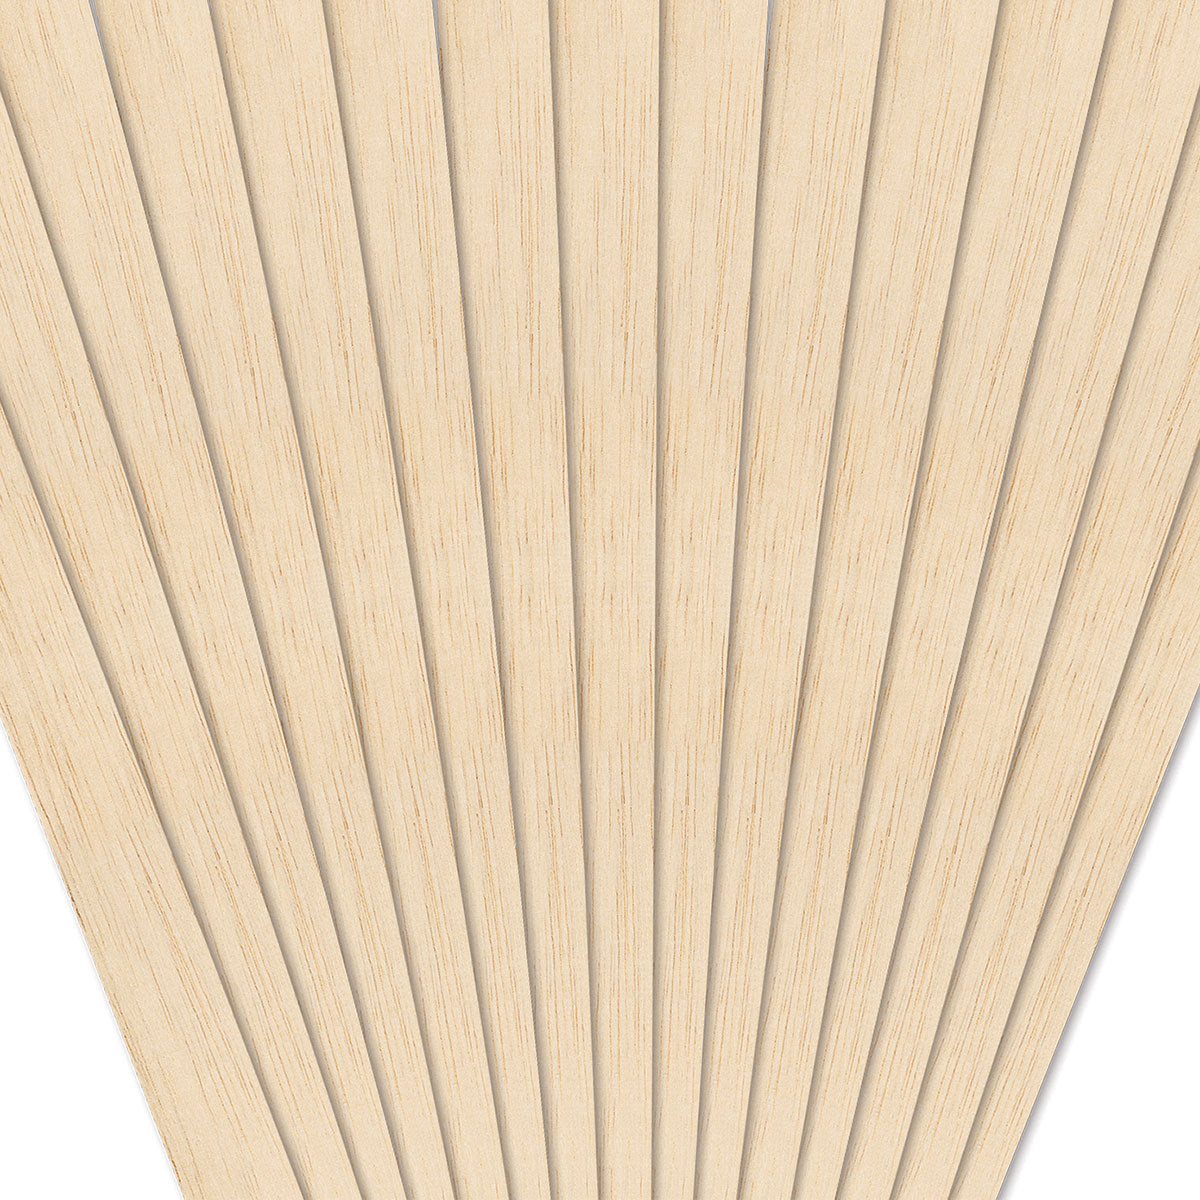 Pack of 36 by Midwest Products Co Inc PartNo 6044 1//8x1//8x36 Balsawood